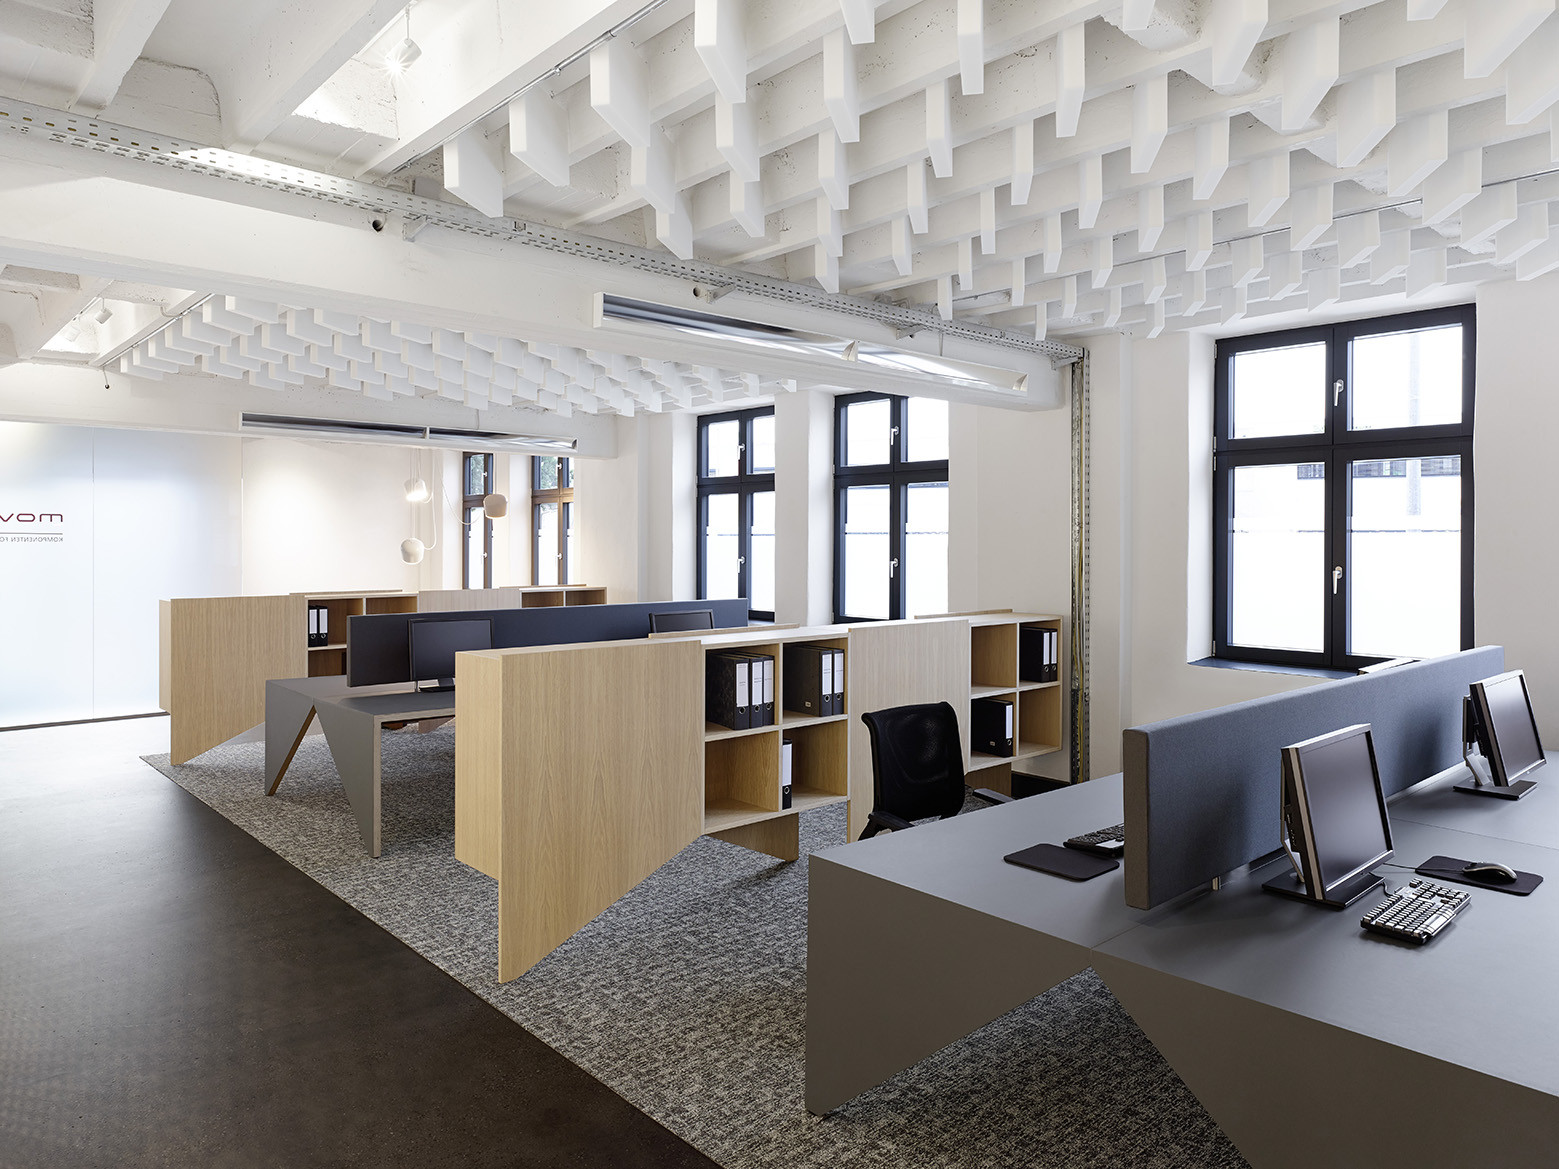 Movet Office Loft Interior Design,© Zooey Braun